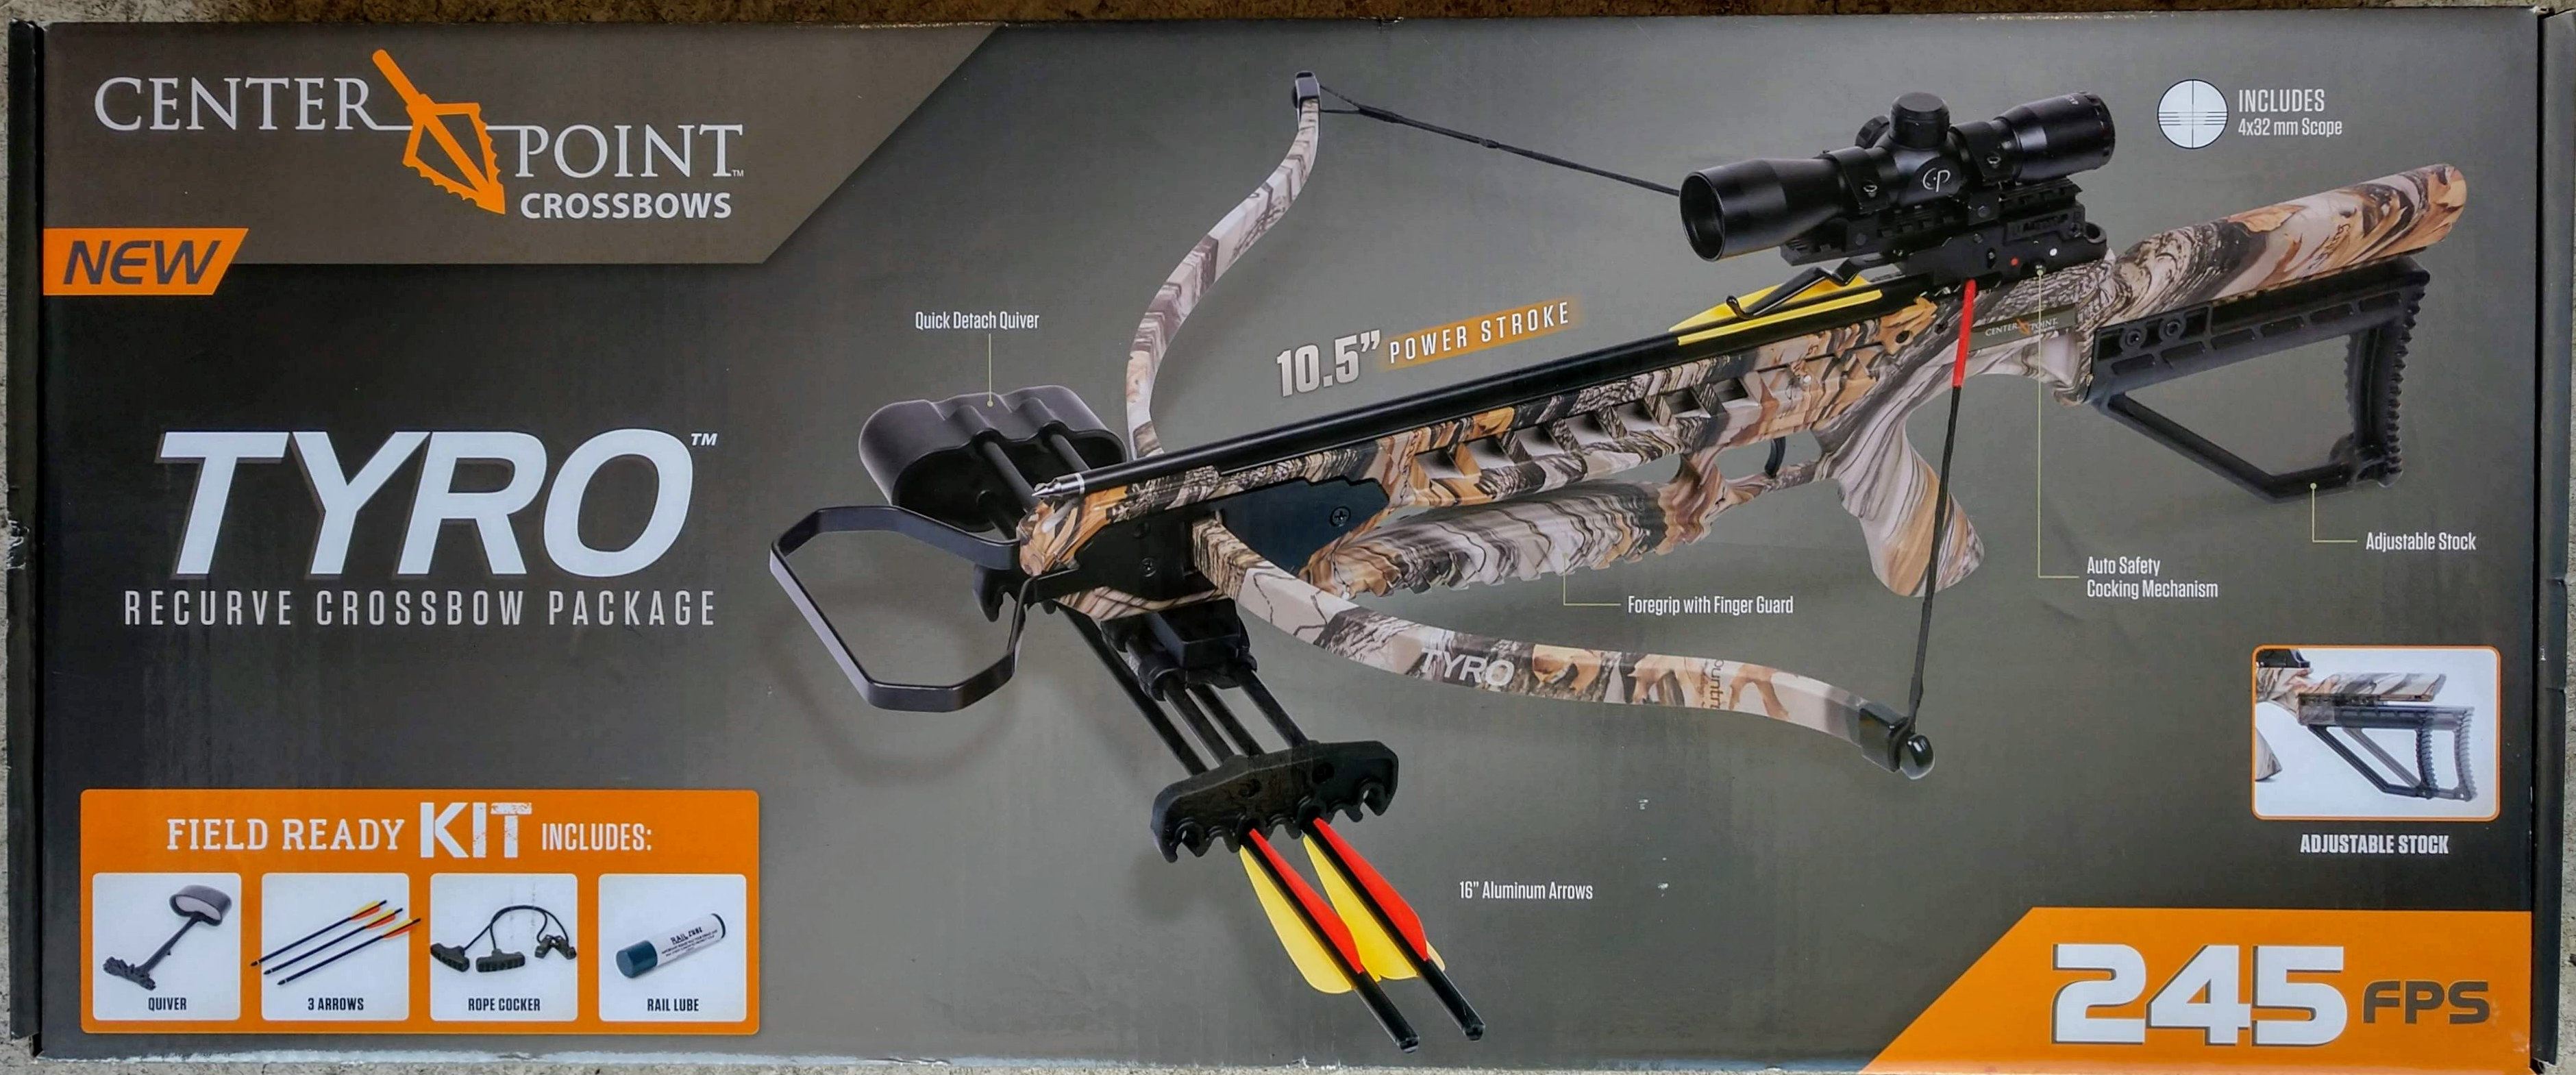 CenterPoint Archery TYRO Recurve Crossbow Kit with 4x32mm Scope | Dan King  Deals